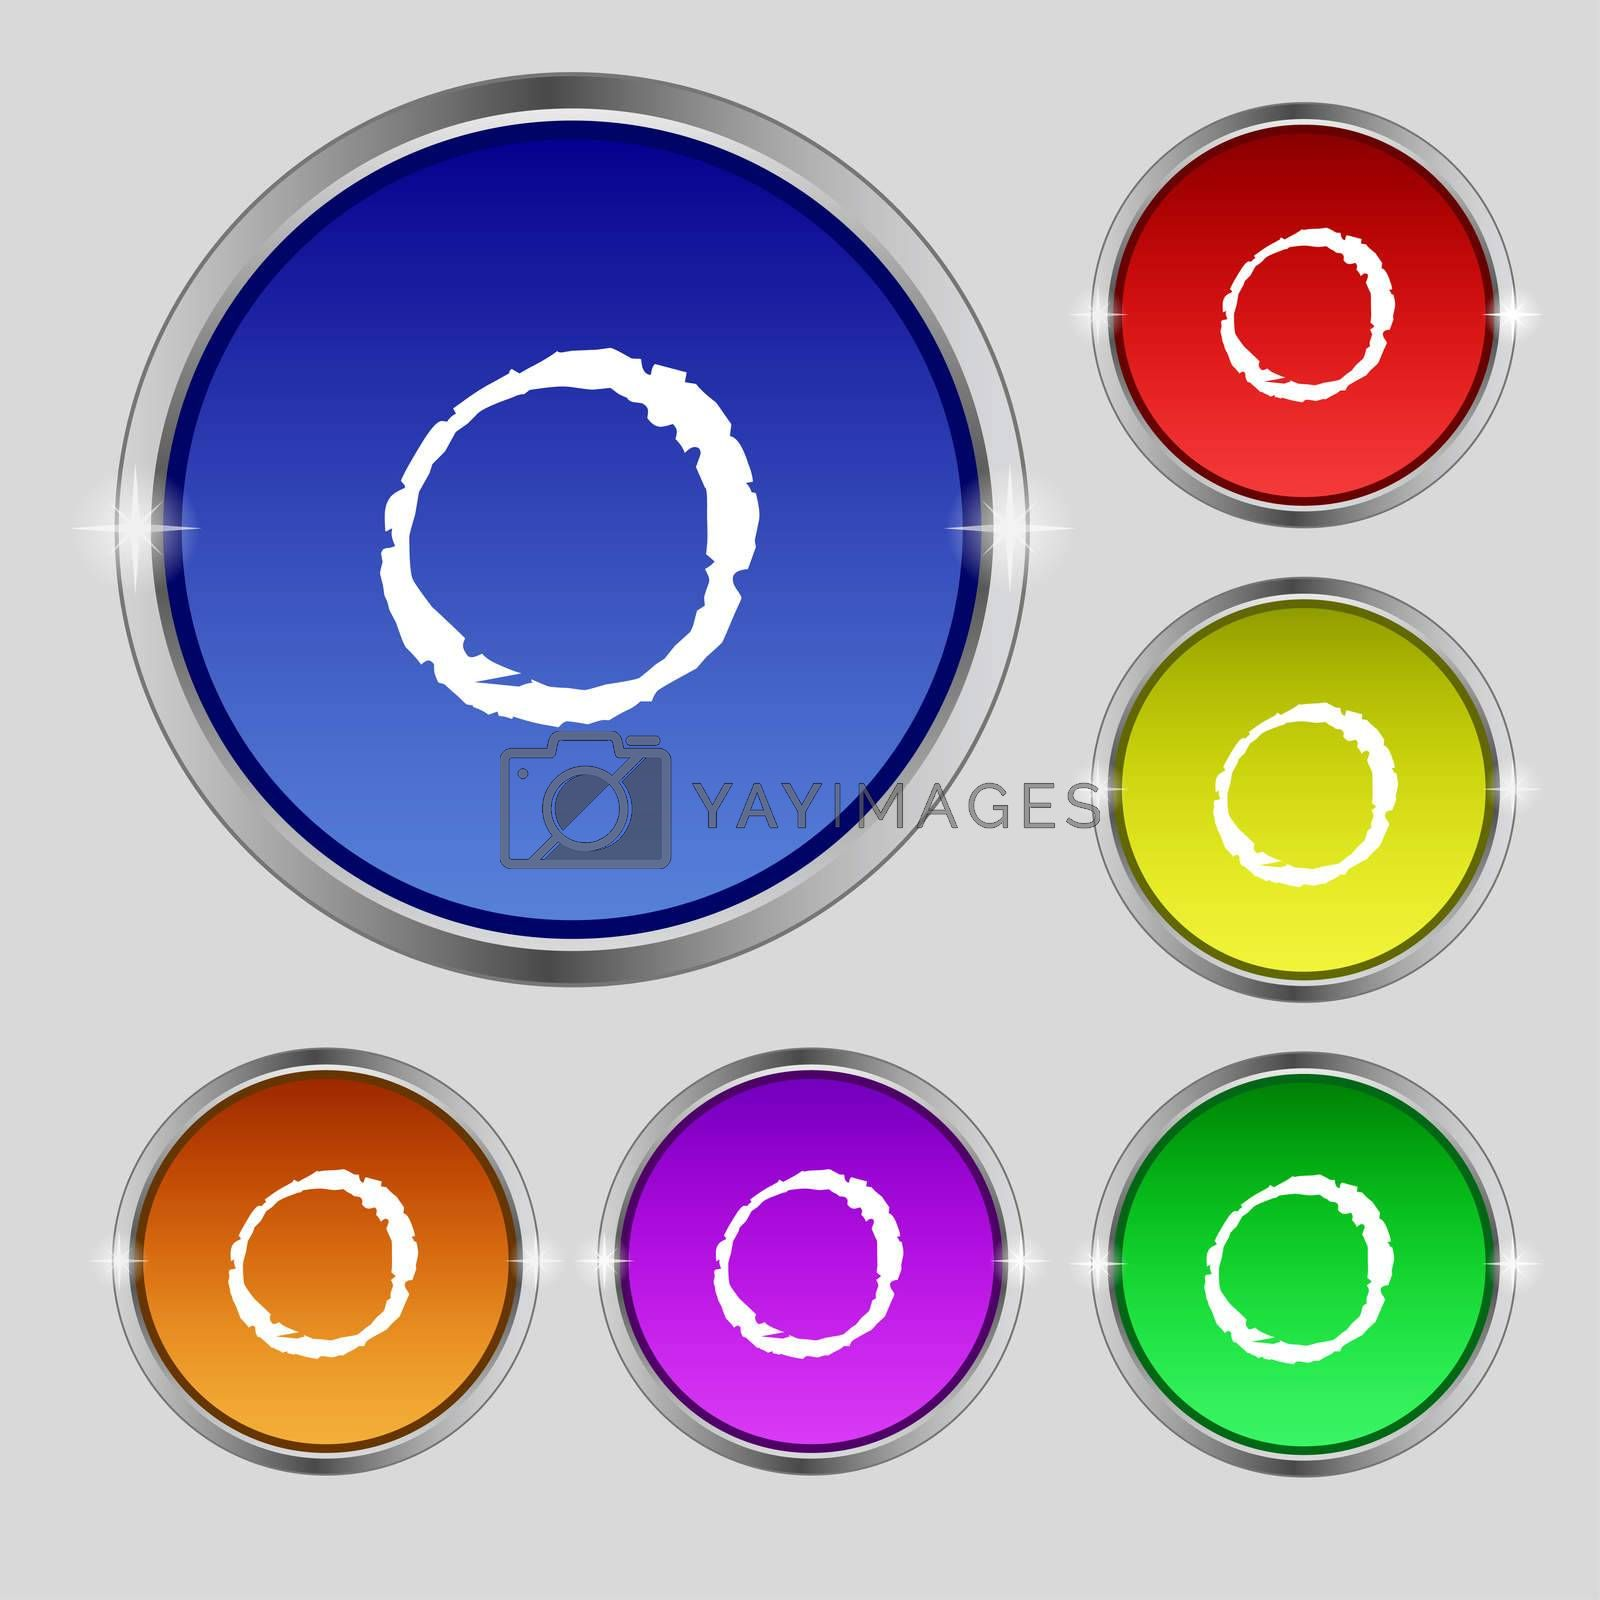 number zero icon sign. Set of coloured buttons.  by Serhii Lohvyniuk